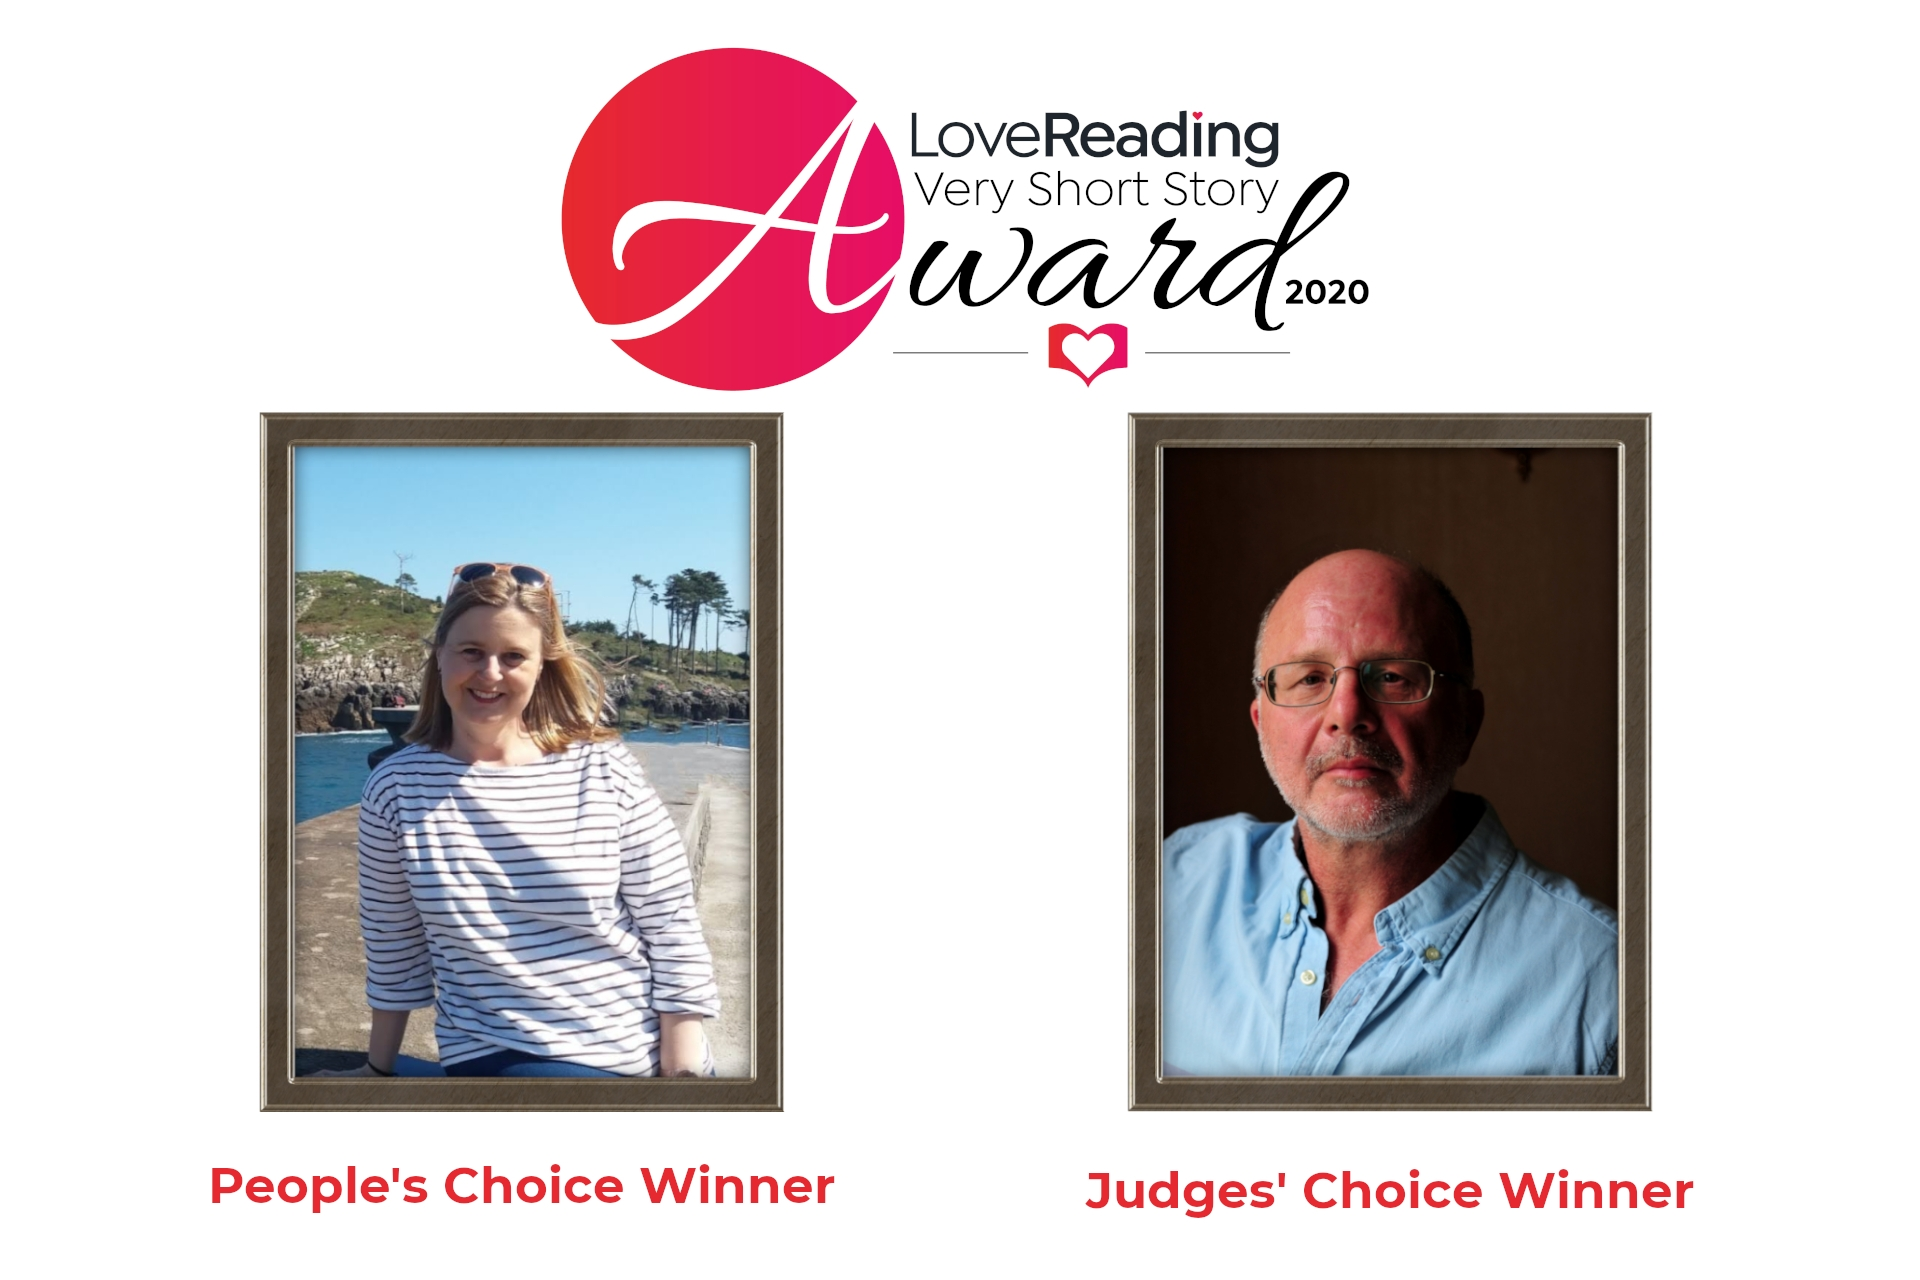 The LoveReading Very Short Story Awards 2020 Winners!